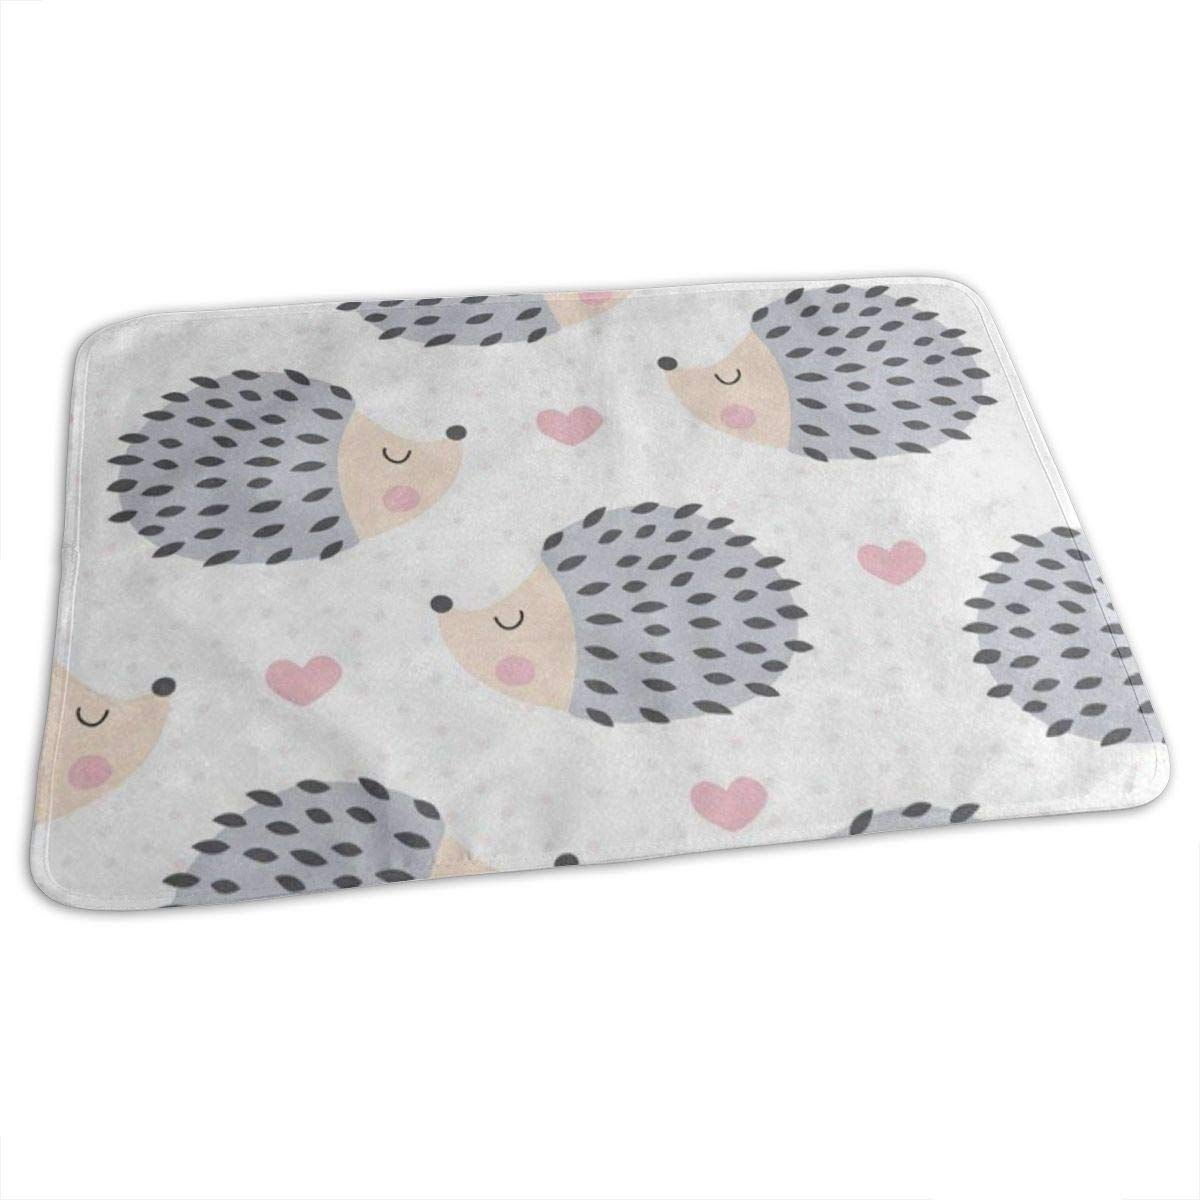 Changing Pad Cartoon Cute Hedgehog Love Heart Baby Diaper Urine Pad Mat Marvellous Adults Bed Wetting Pads Sheet for Any Places for Home Travel Bed Play Stroller Crib Car